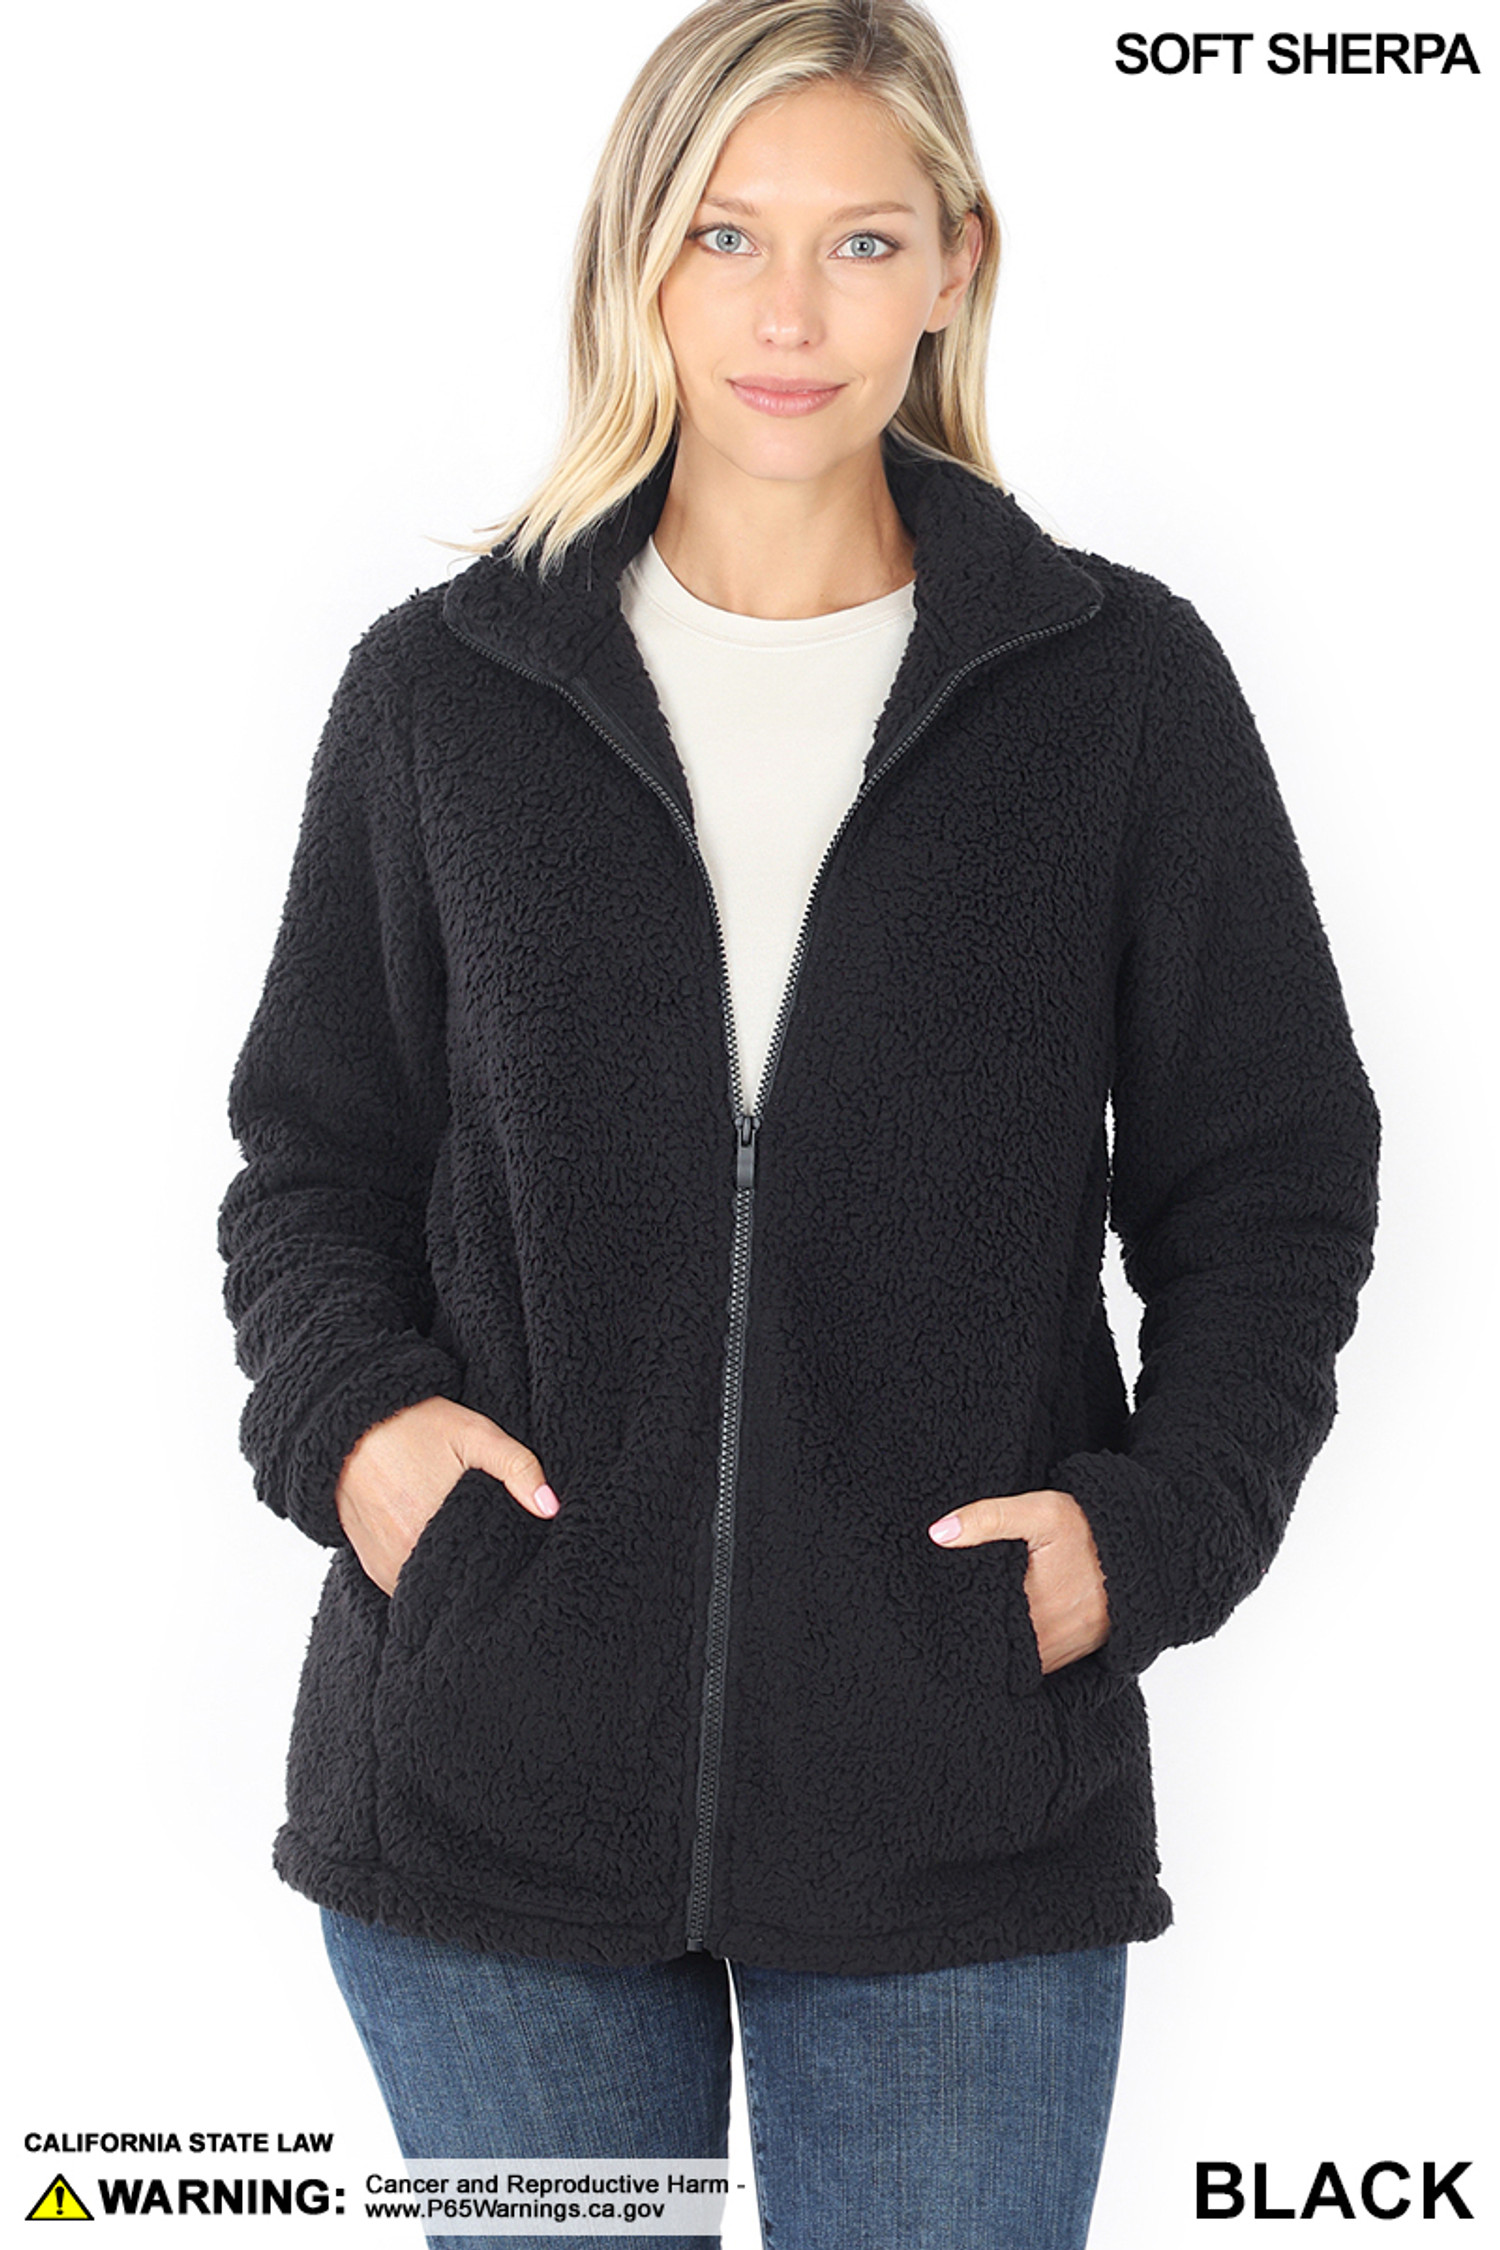 Front Partially Unzipped of Black Sherpa Zip Up Jacket with Side Pockets